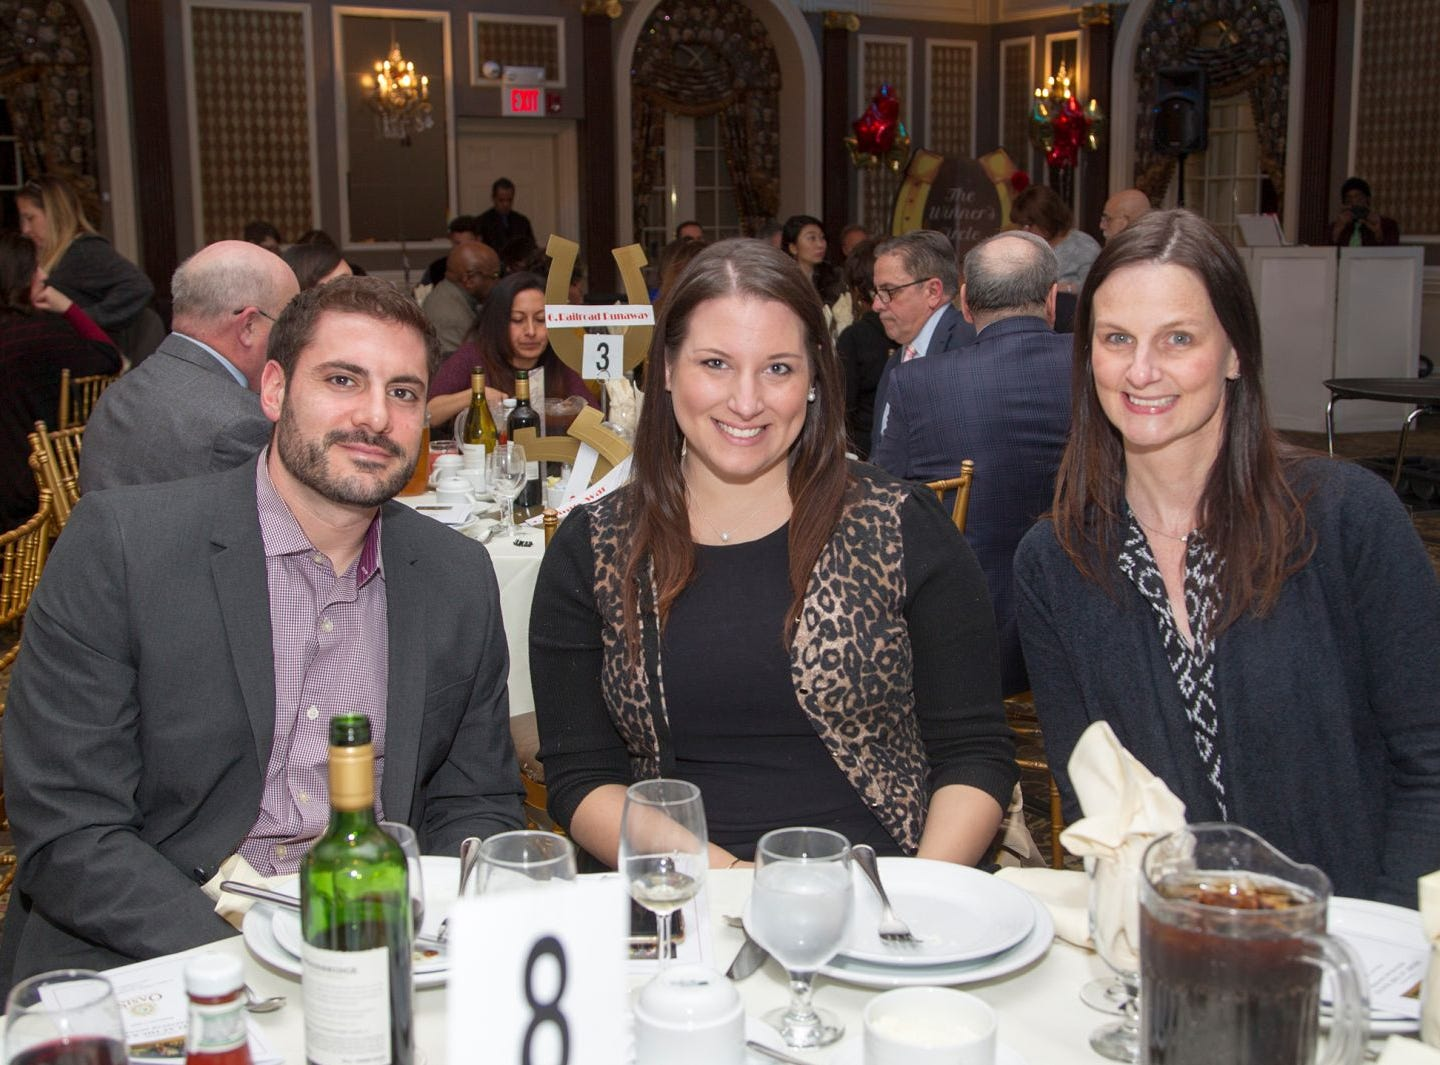 Matthew Ganguzza, Kristi Wendel, Jessica Neuendoff. A Night at the Races hosted by OASIS at the Brownstone in Paterson. 2/7/2019